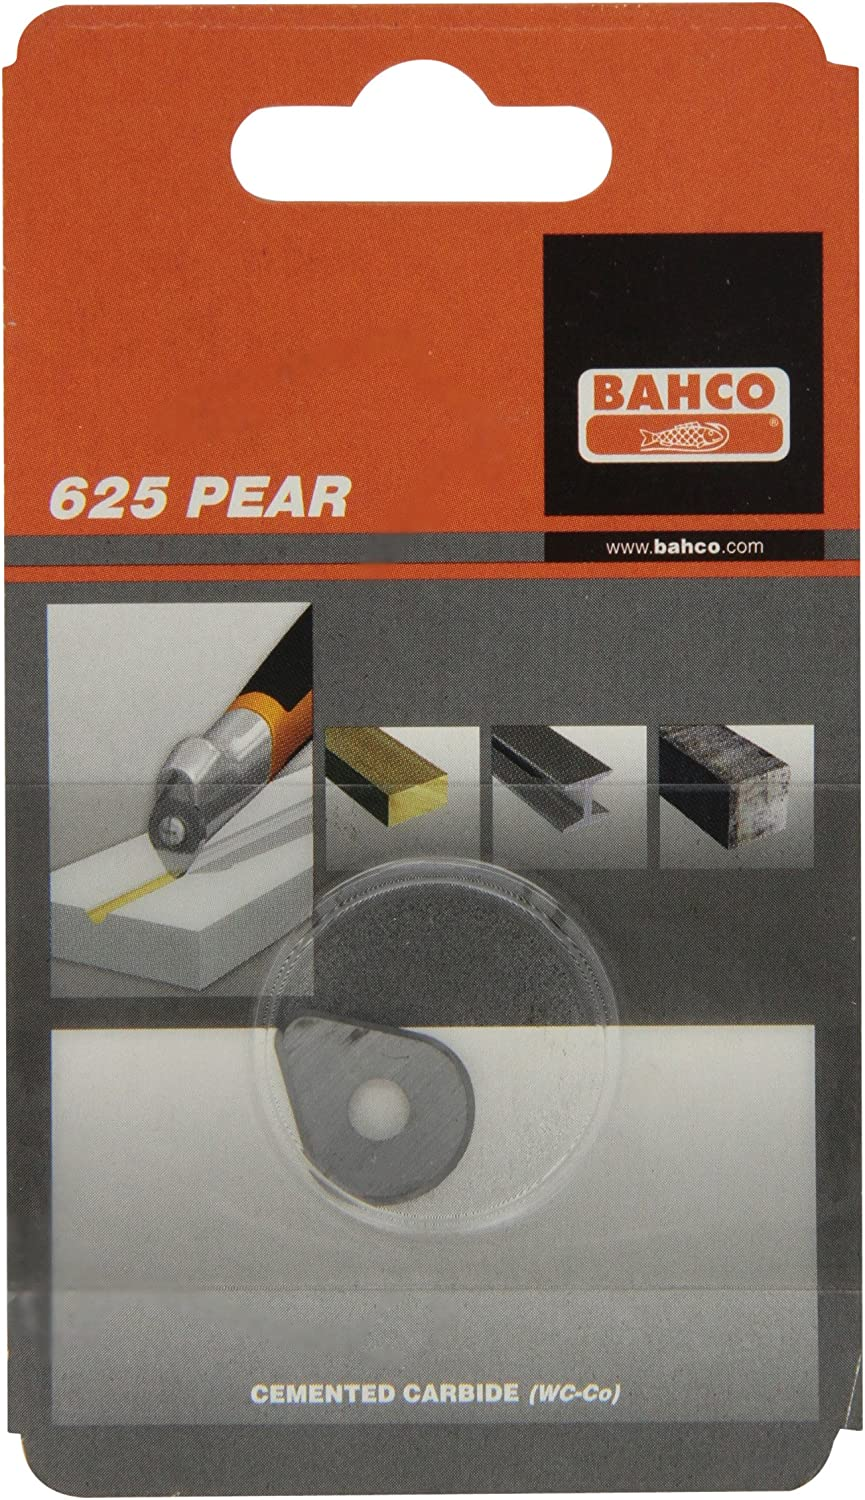 PEAR CARBIDE SCRAPER BLADE REPLACEMENT TIP WOOD PAINT CONCRETE BAHCO 625